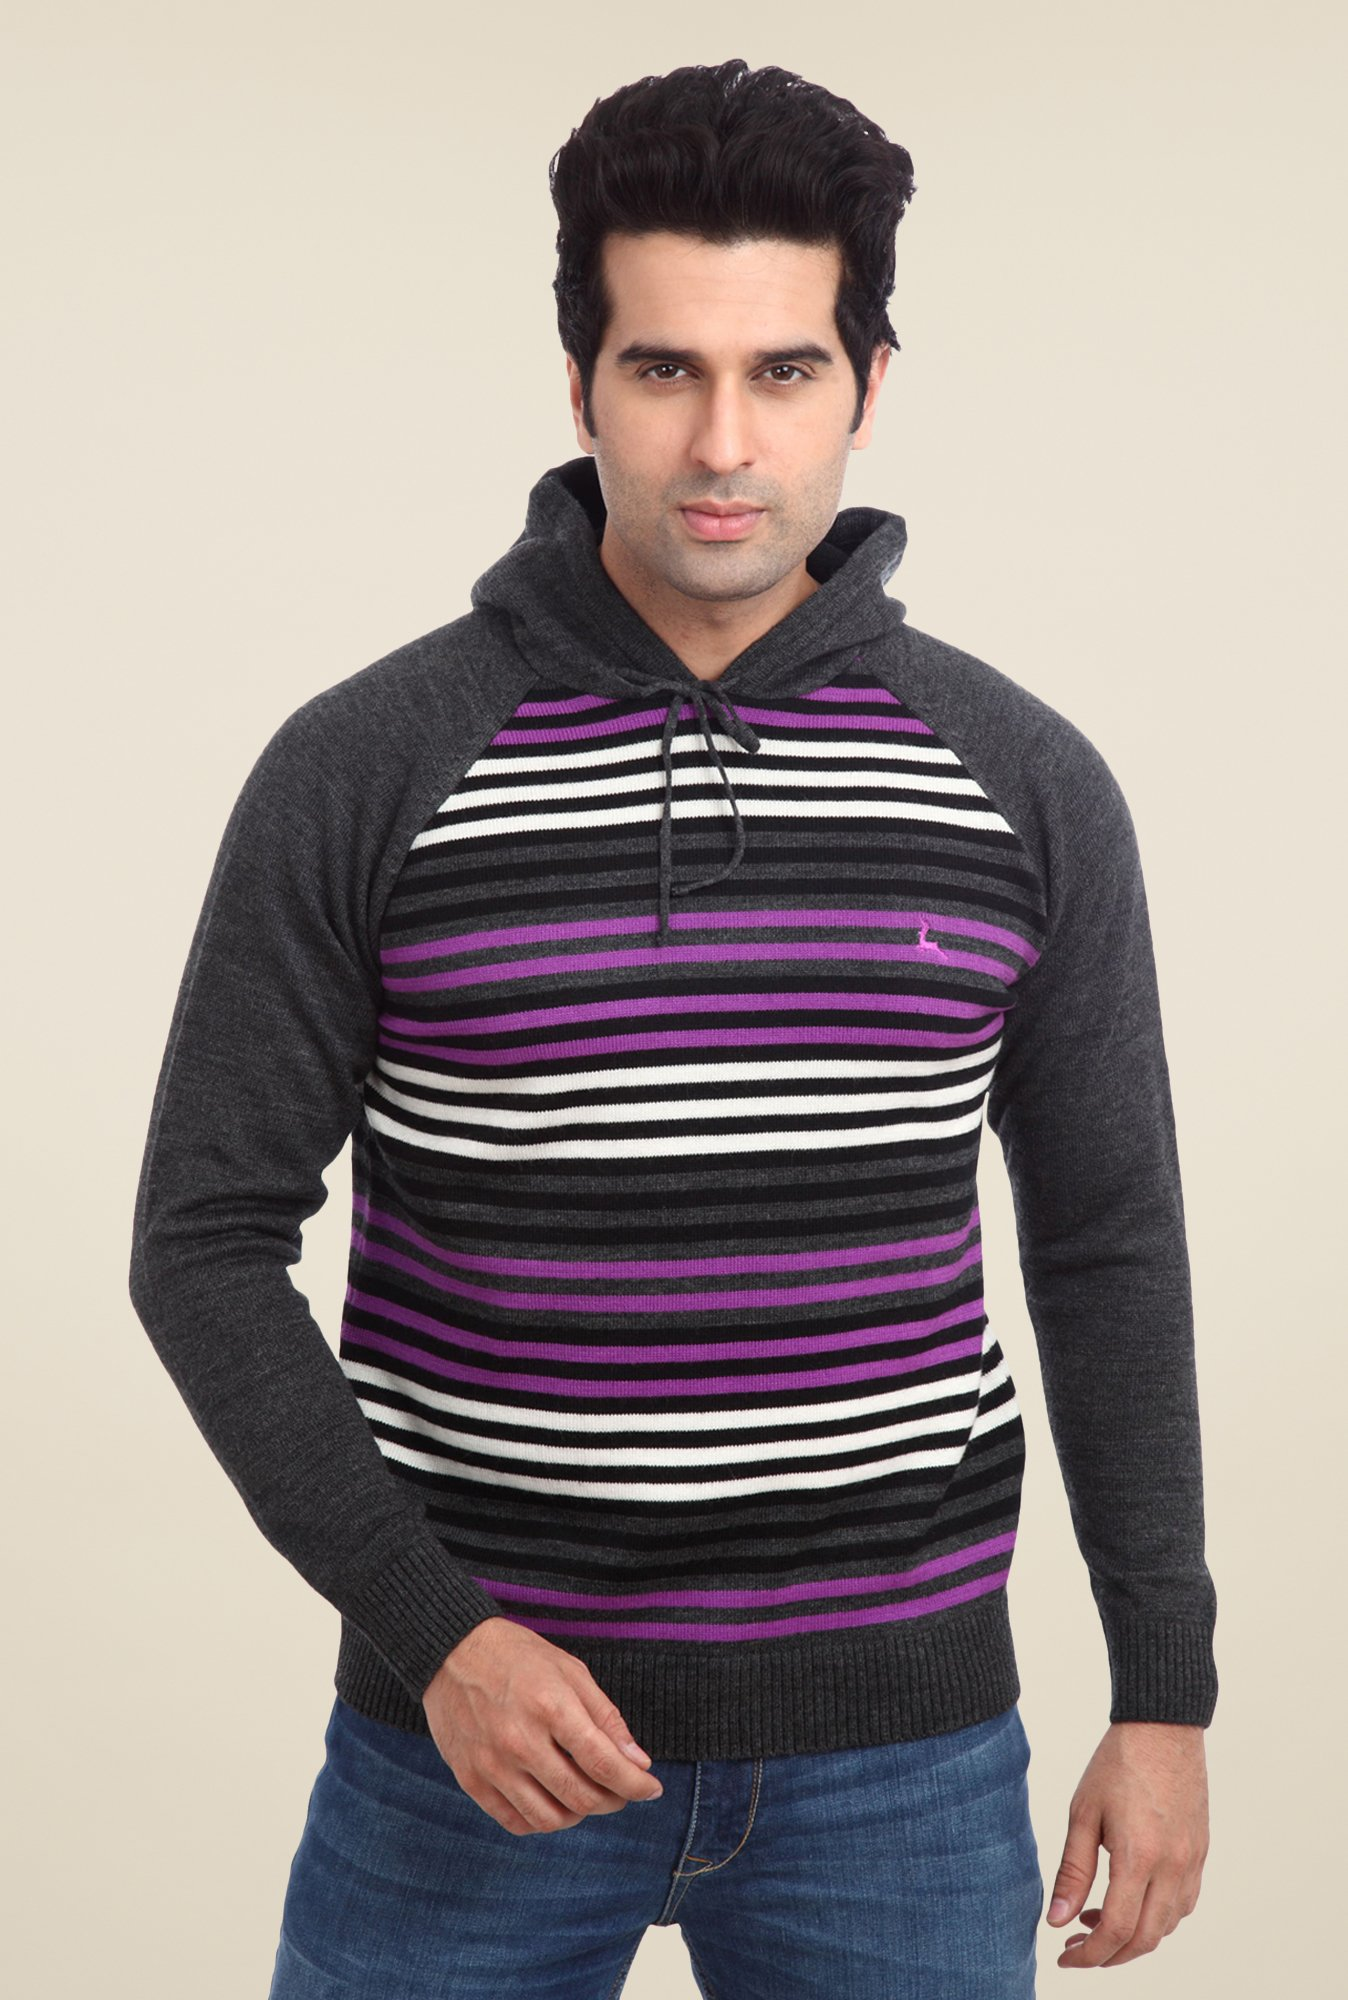 Parx Grey Striped Sweater